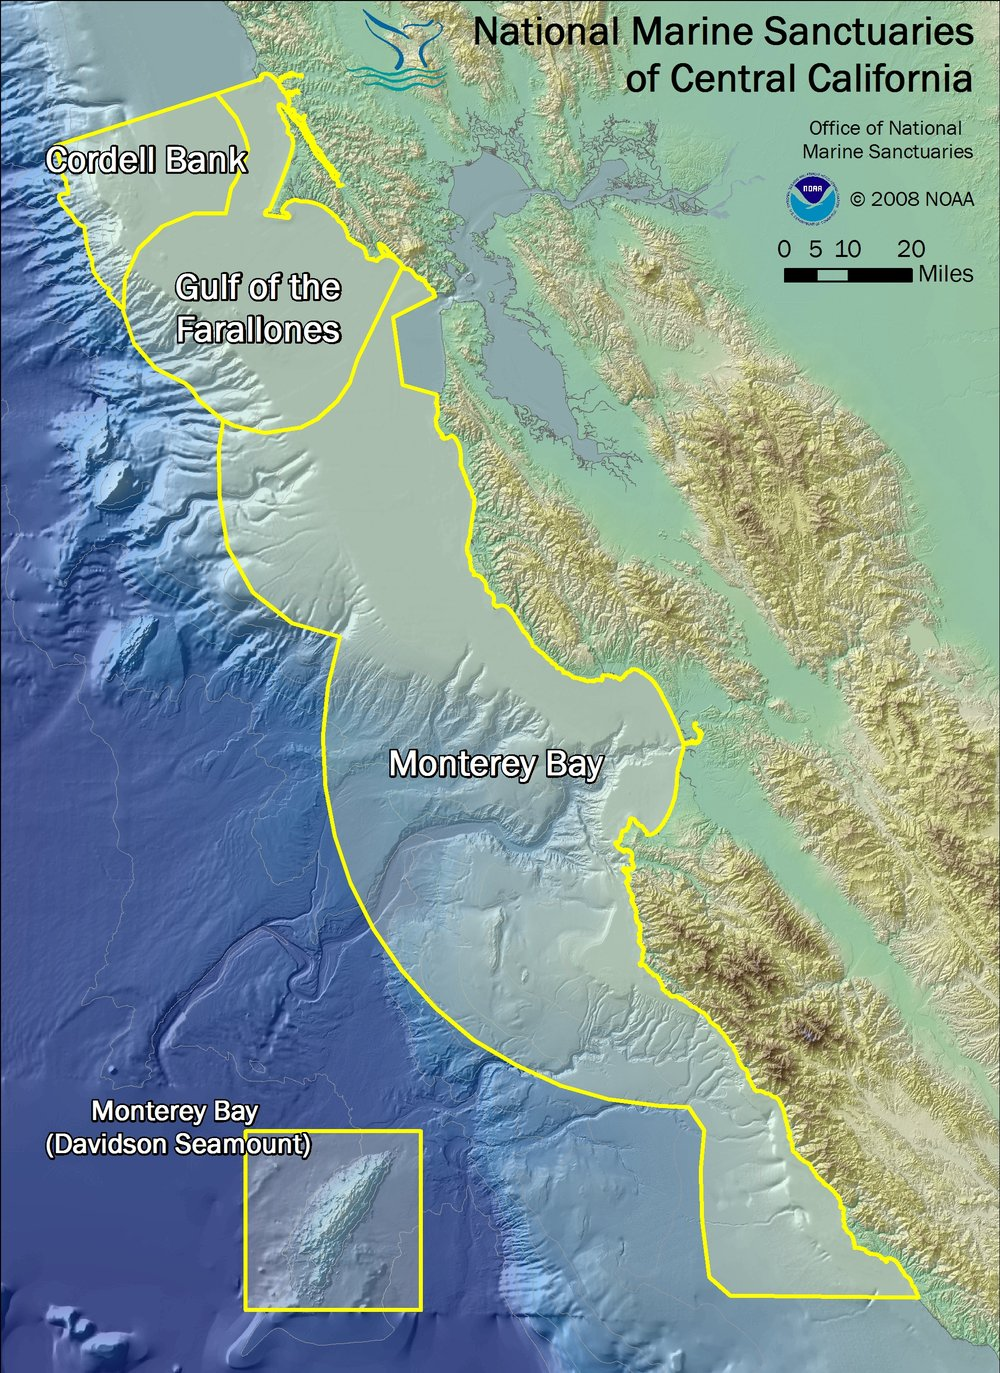 Boundaries of Monterey Bay, Gulf of the Farallones, and Cordell Bank national marine sanctuaries, plus the 2008 Davidson Seamount addition to Monterey Bay National Marine Sanctuary. Image credit:  NOAA